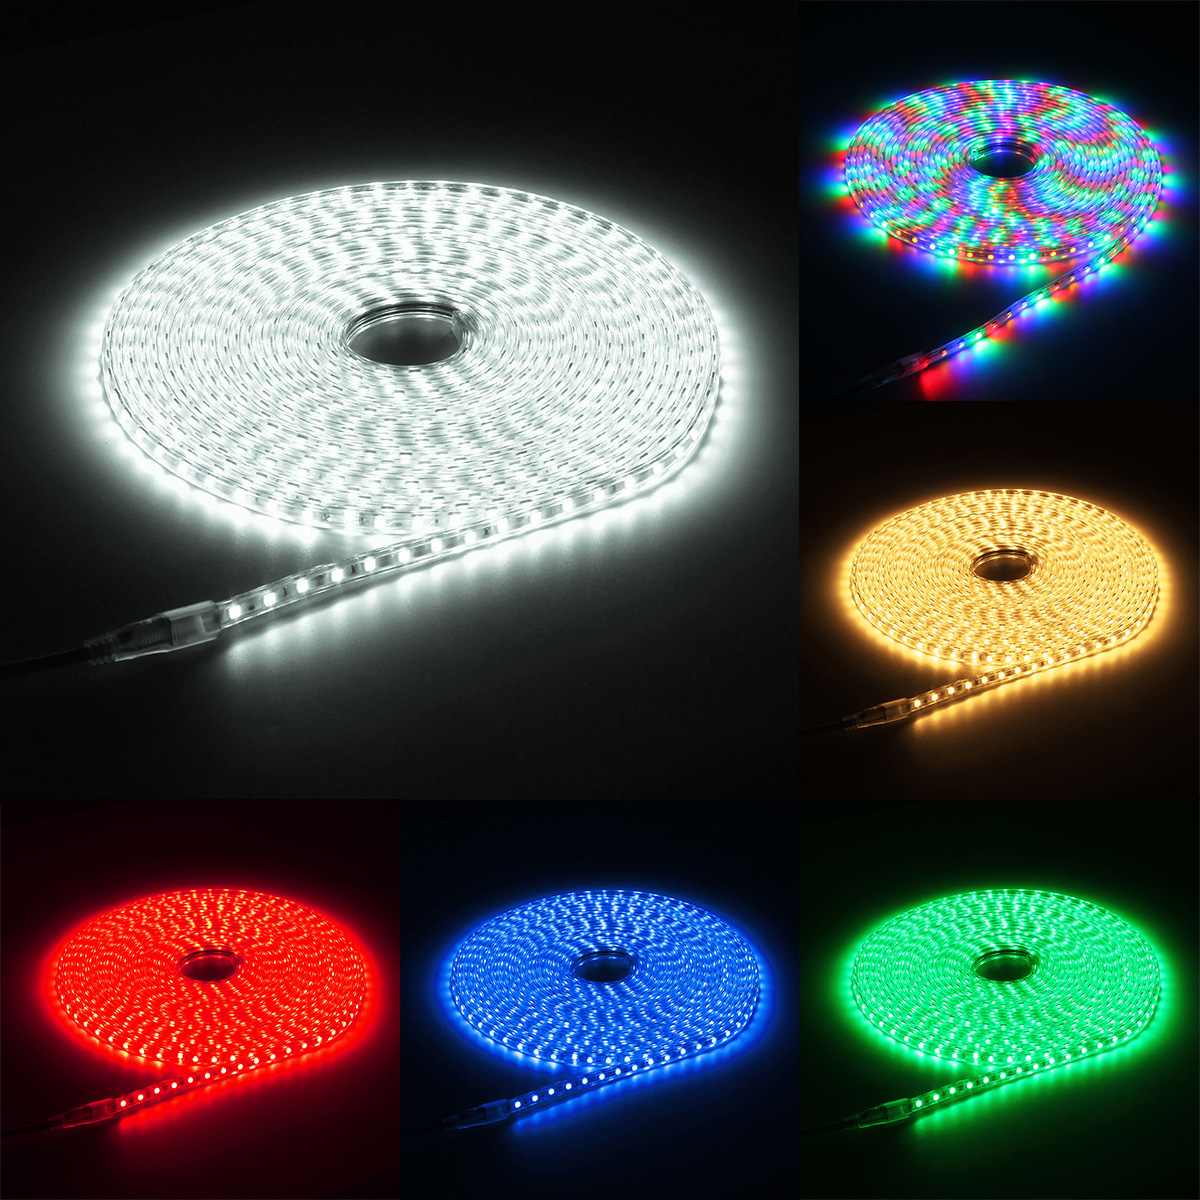 220V 12M 5050 LED SMD Outdoor Waterproof Flexible Tape Rope Strip Light Xmas